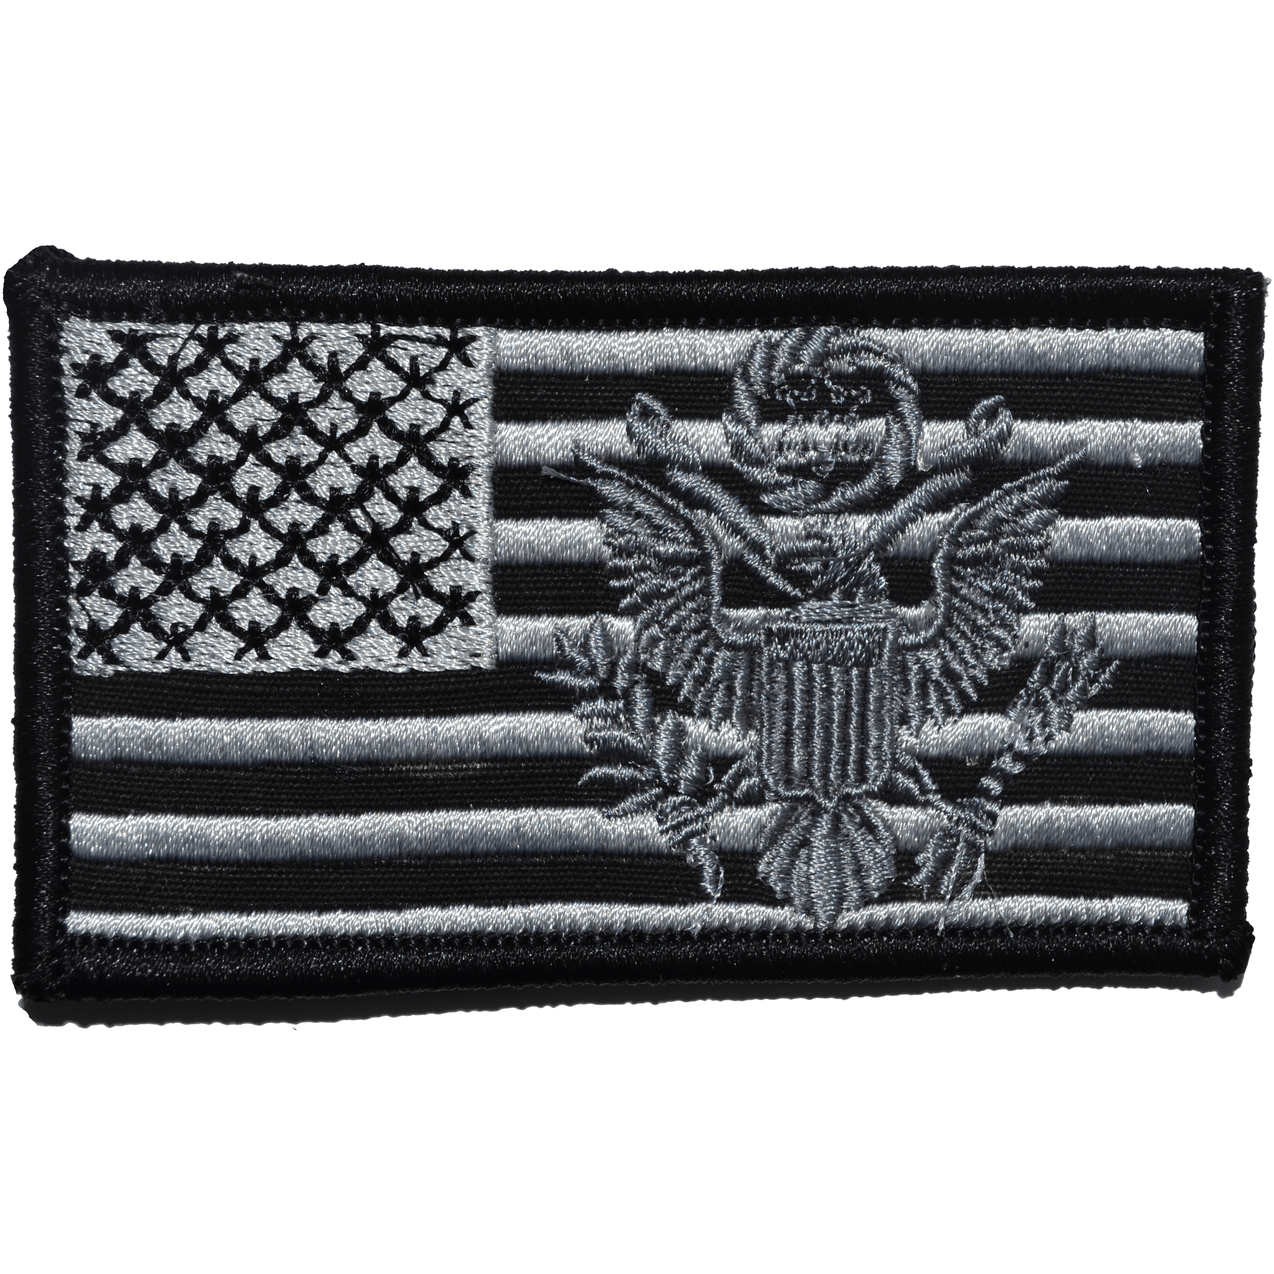 Tactical Gear Junkie Patches Black USA Flag with Superimposed U.S. Army Crest - 2x3.5 Patch